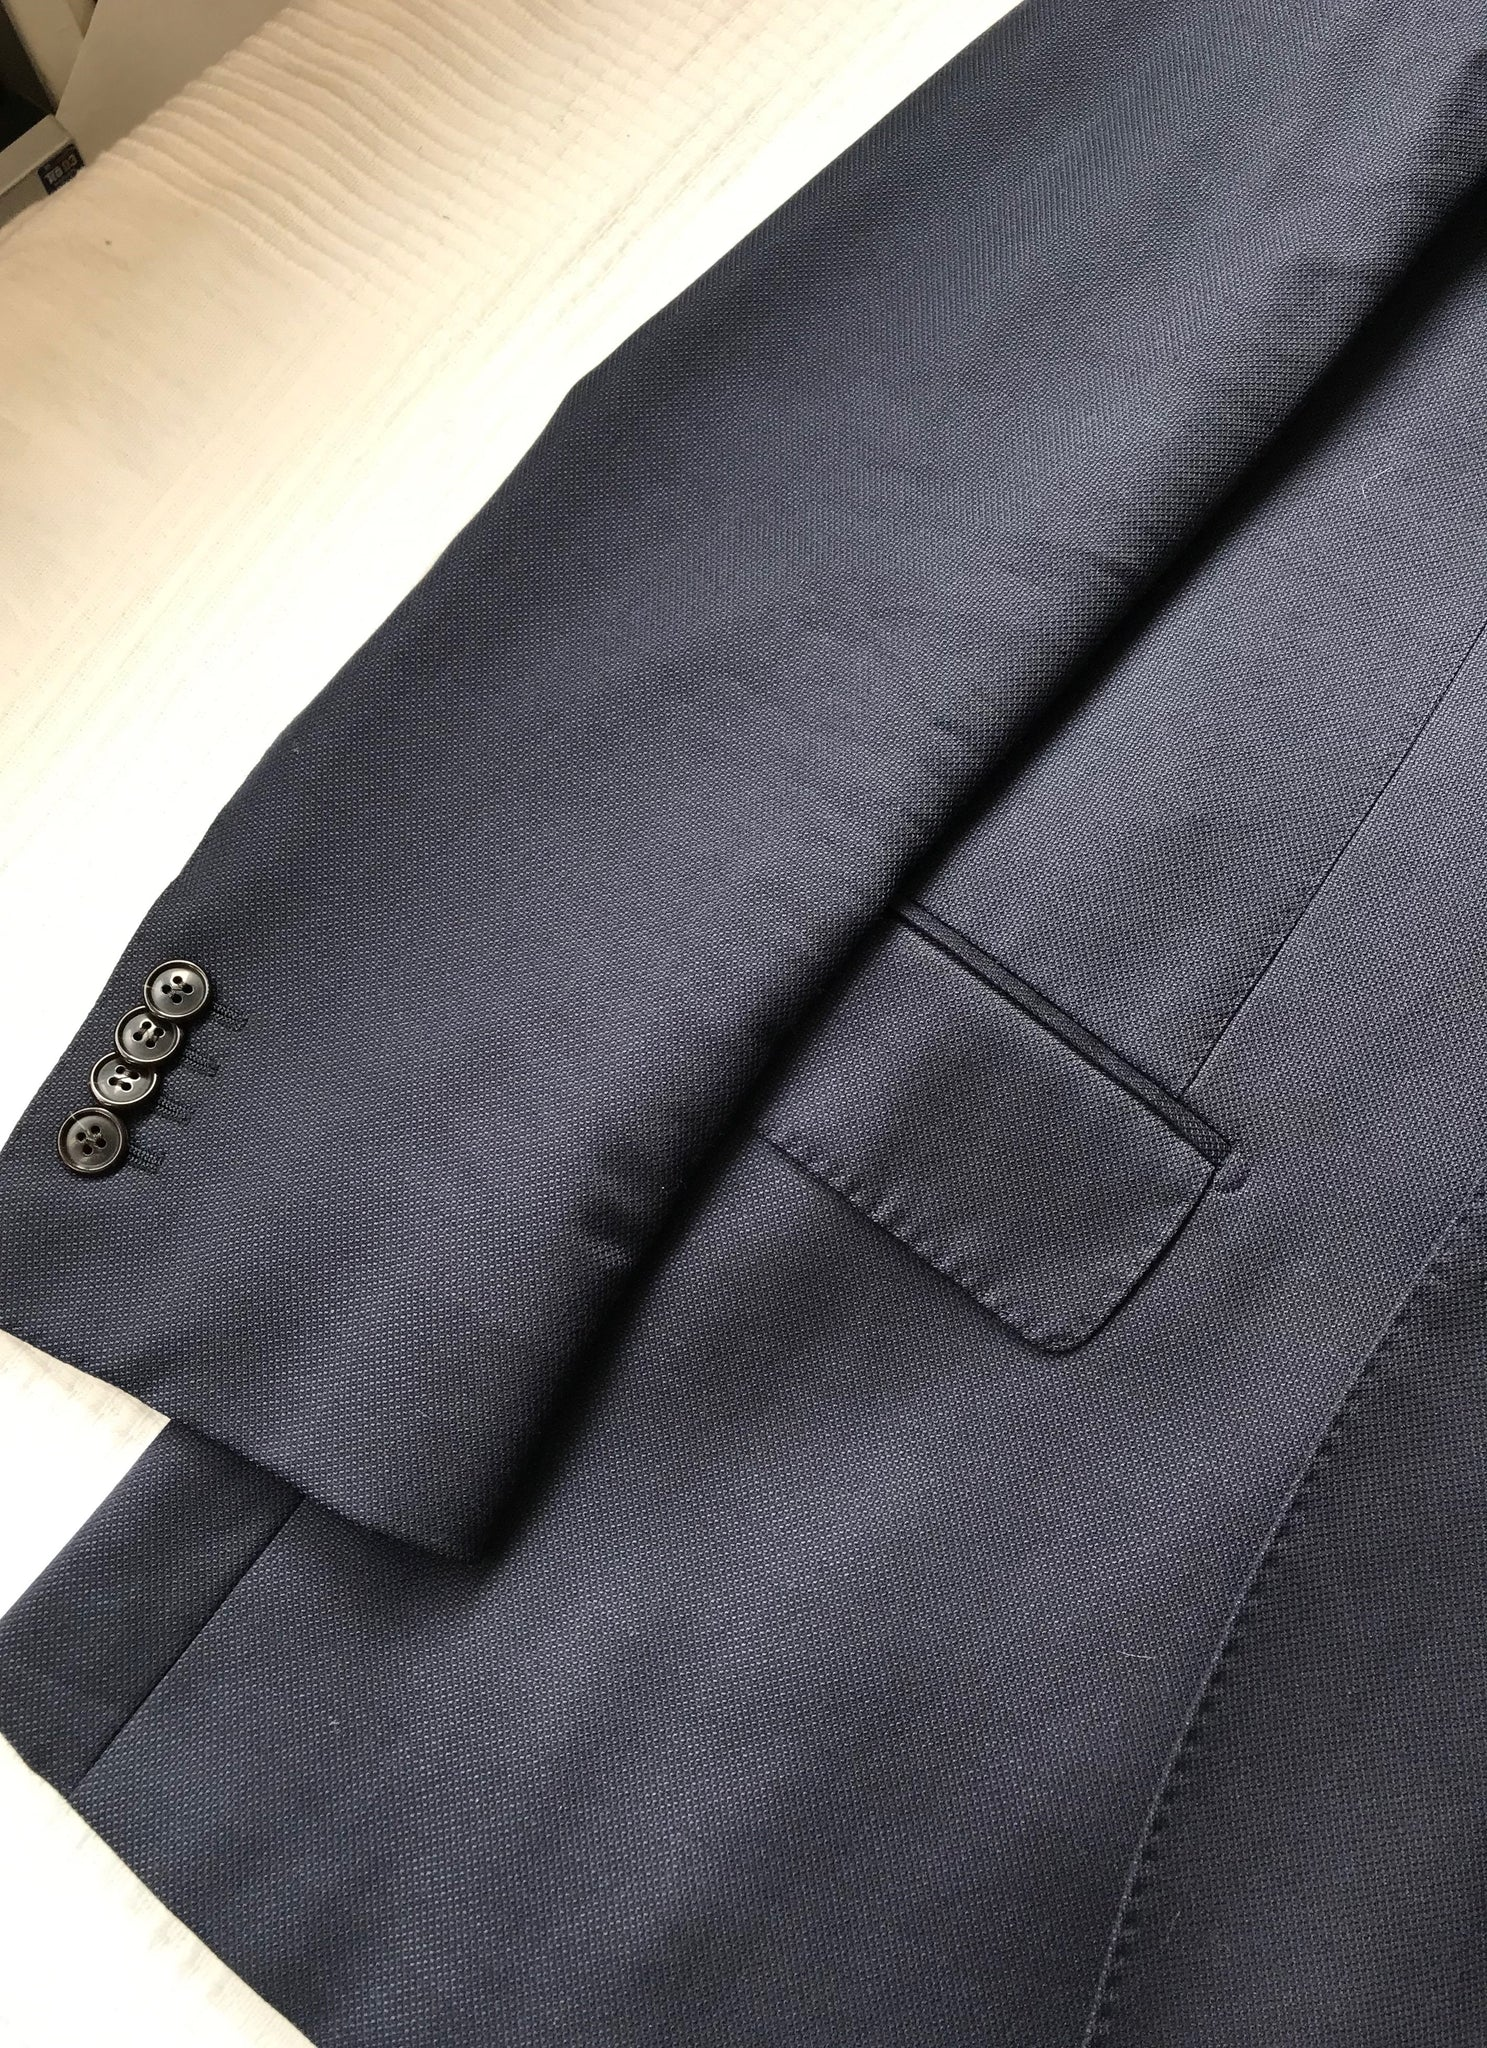 USED SUITSUPPLY LAZIO Navy Blue Wool, Linen and Cotton Suit